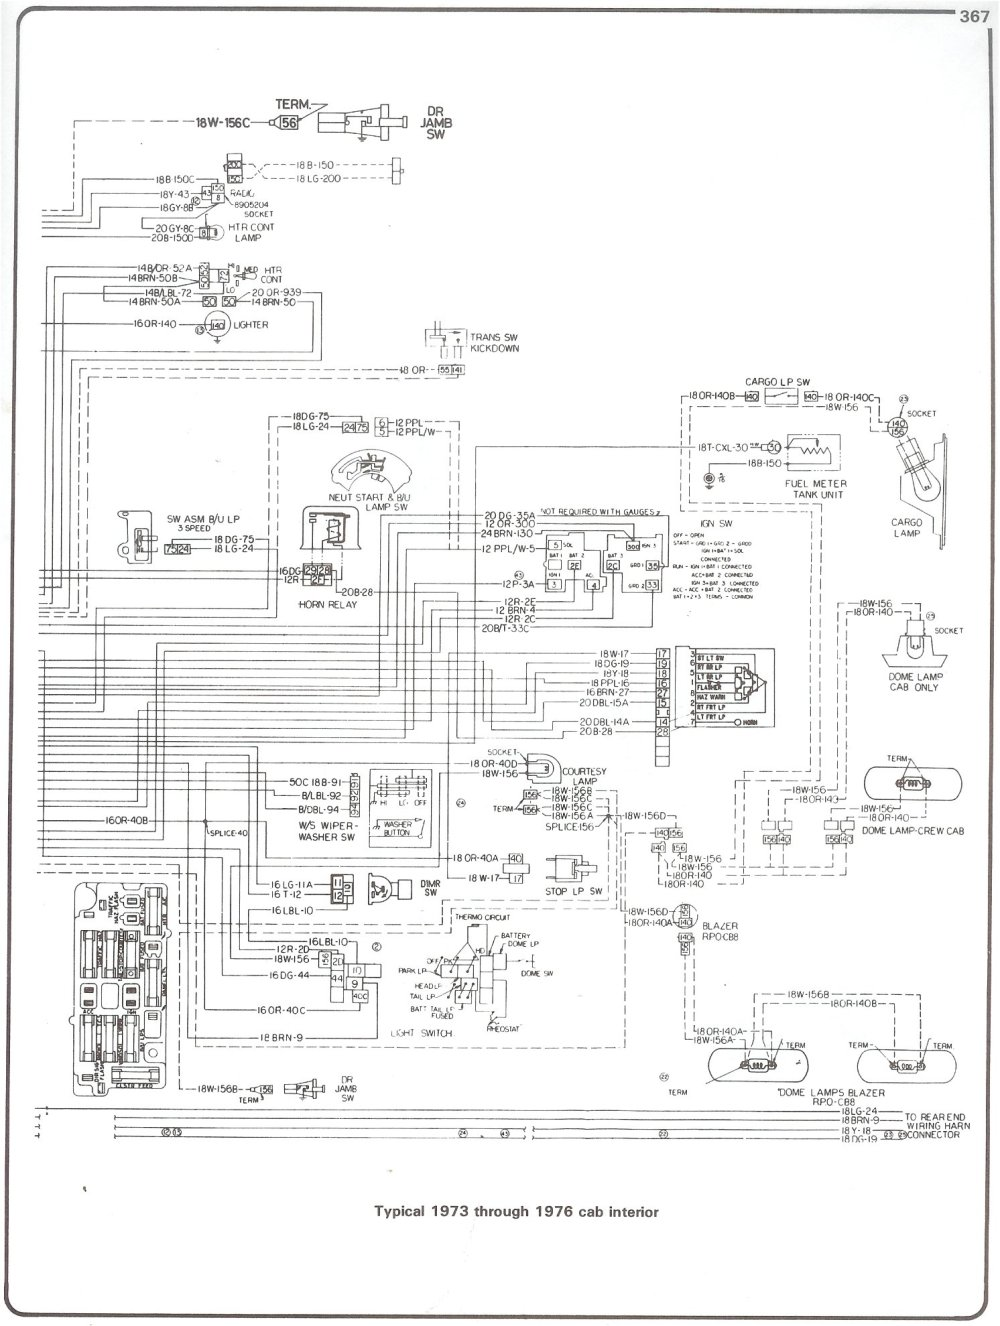 medium resolution of complete 73 87 wiring diagrams 76 chevy truck wiring diagram 76 chevy truck wiring diagram